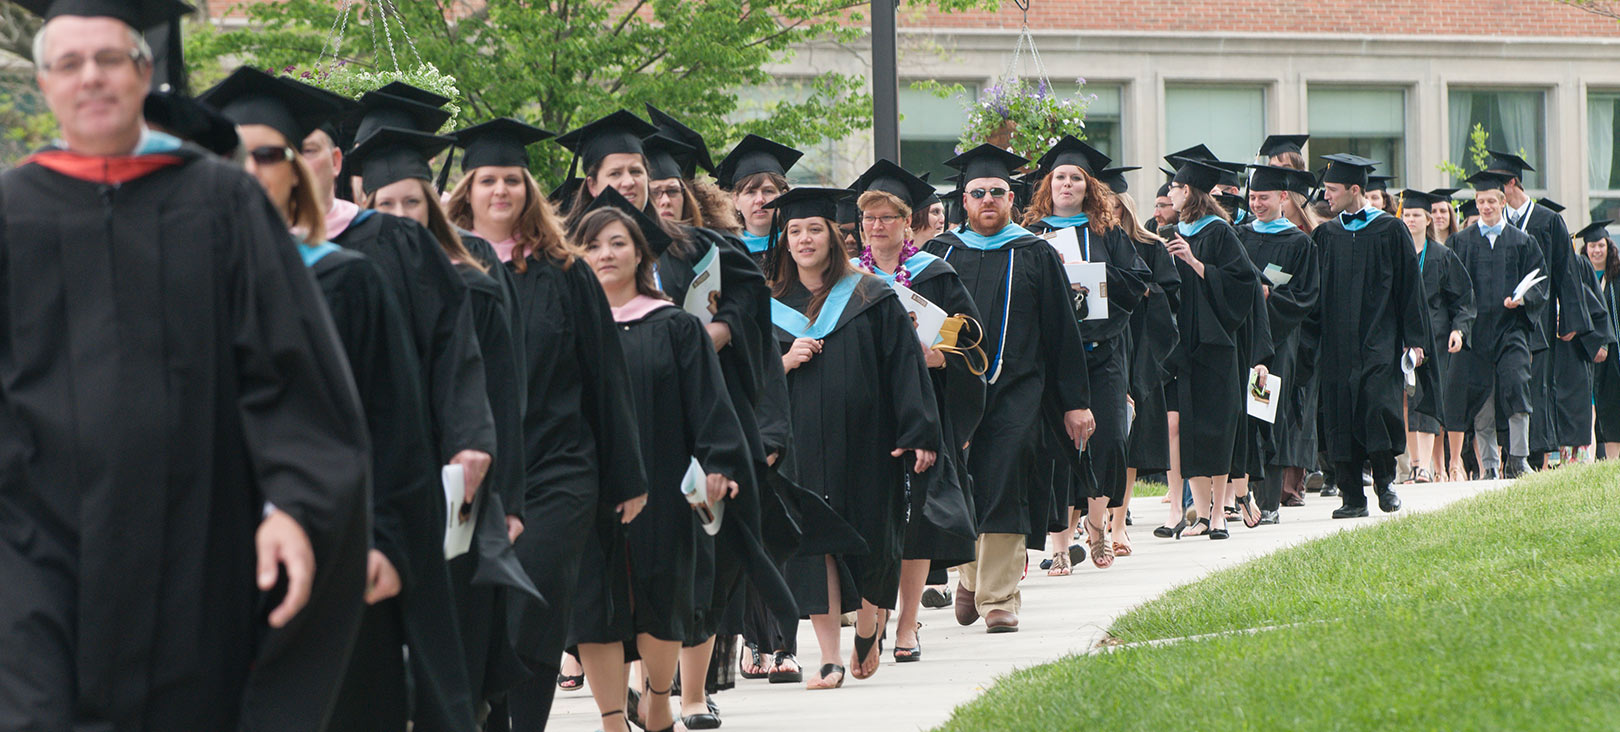 Financial Aid for Graduate Programs Graduating seniors walking with their gowns and caps on.jpg